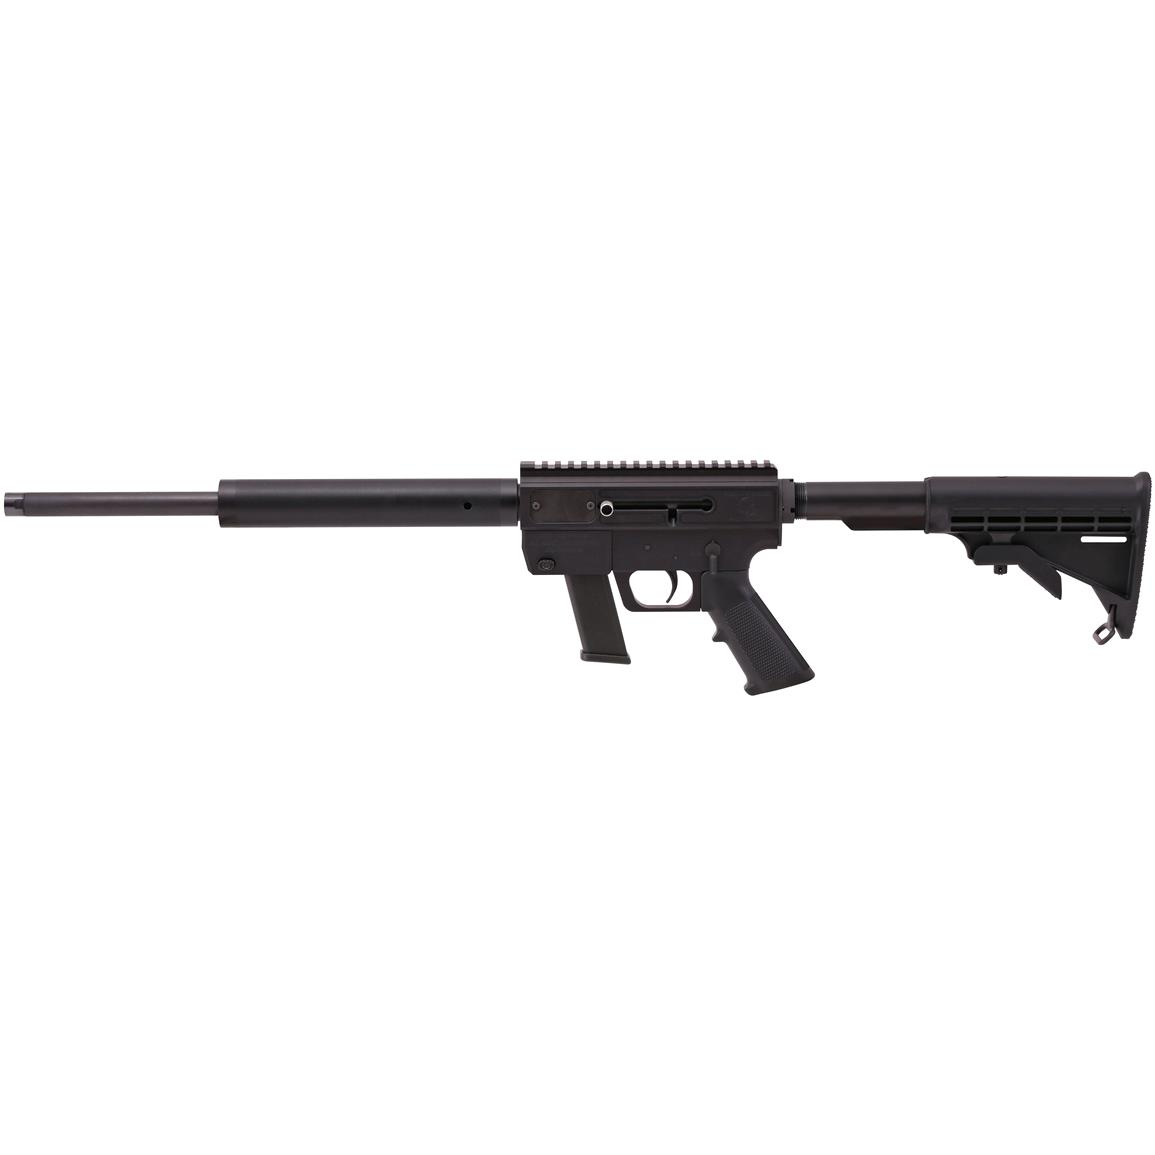 JRC Takedown Pistol Caliber Carbine, Semi-automatic, .40 Smith & Wesson, 40TD15TBBL, 741459538040, Uses Glock 15-rd. Magazines